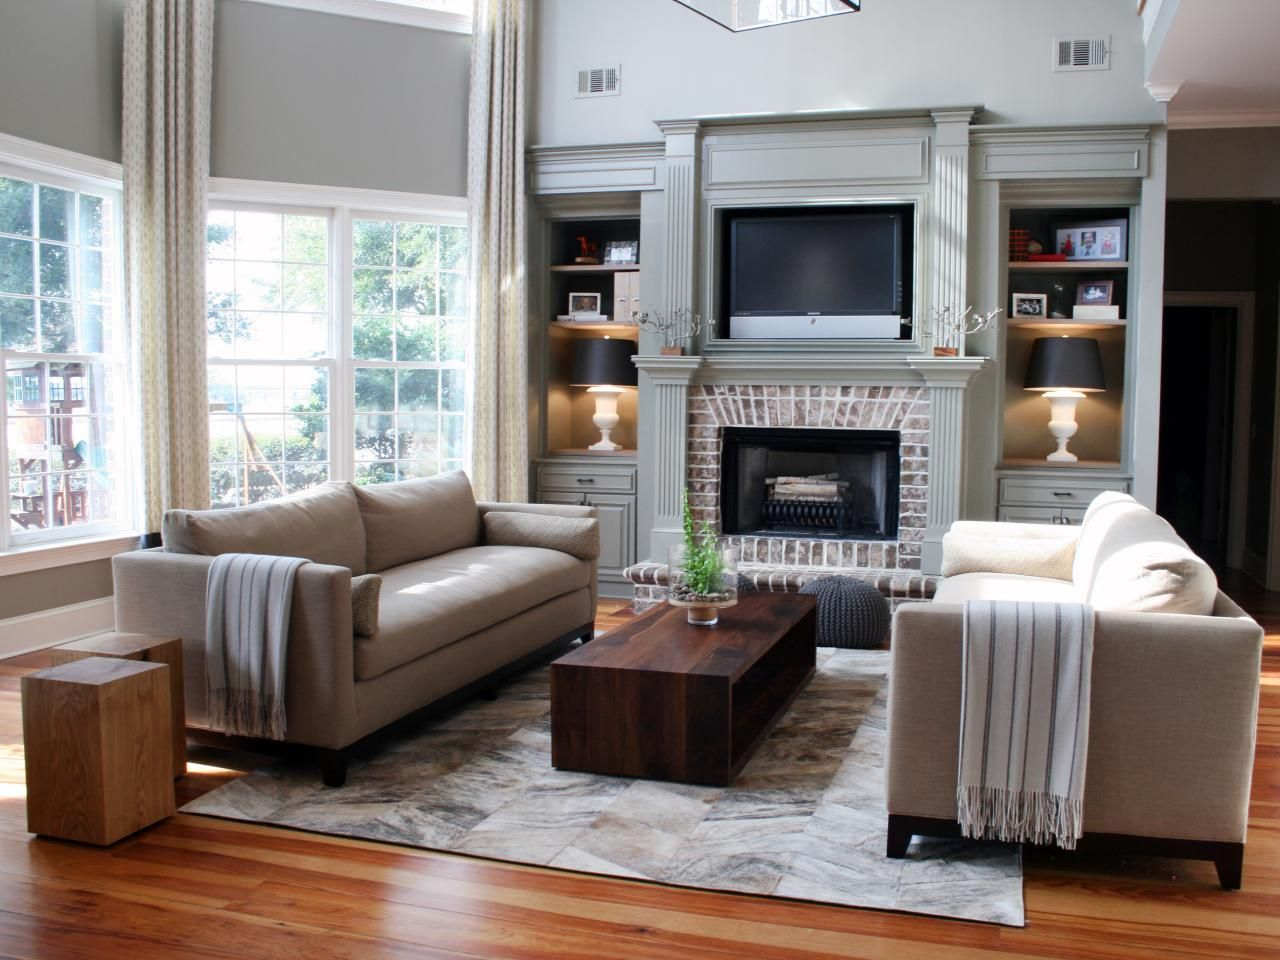 Tuscan Style 101 With Hgtv Interior Design Styles And Color Schemes For Home Decorati Transitional Living Rooms Living Room With Fireplace Family Room Design